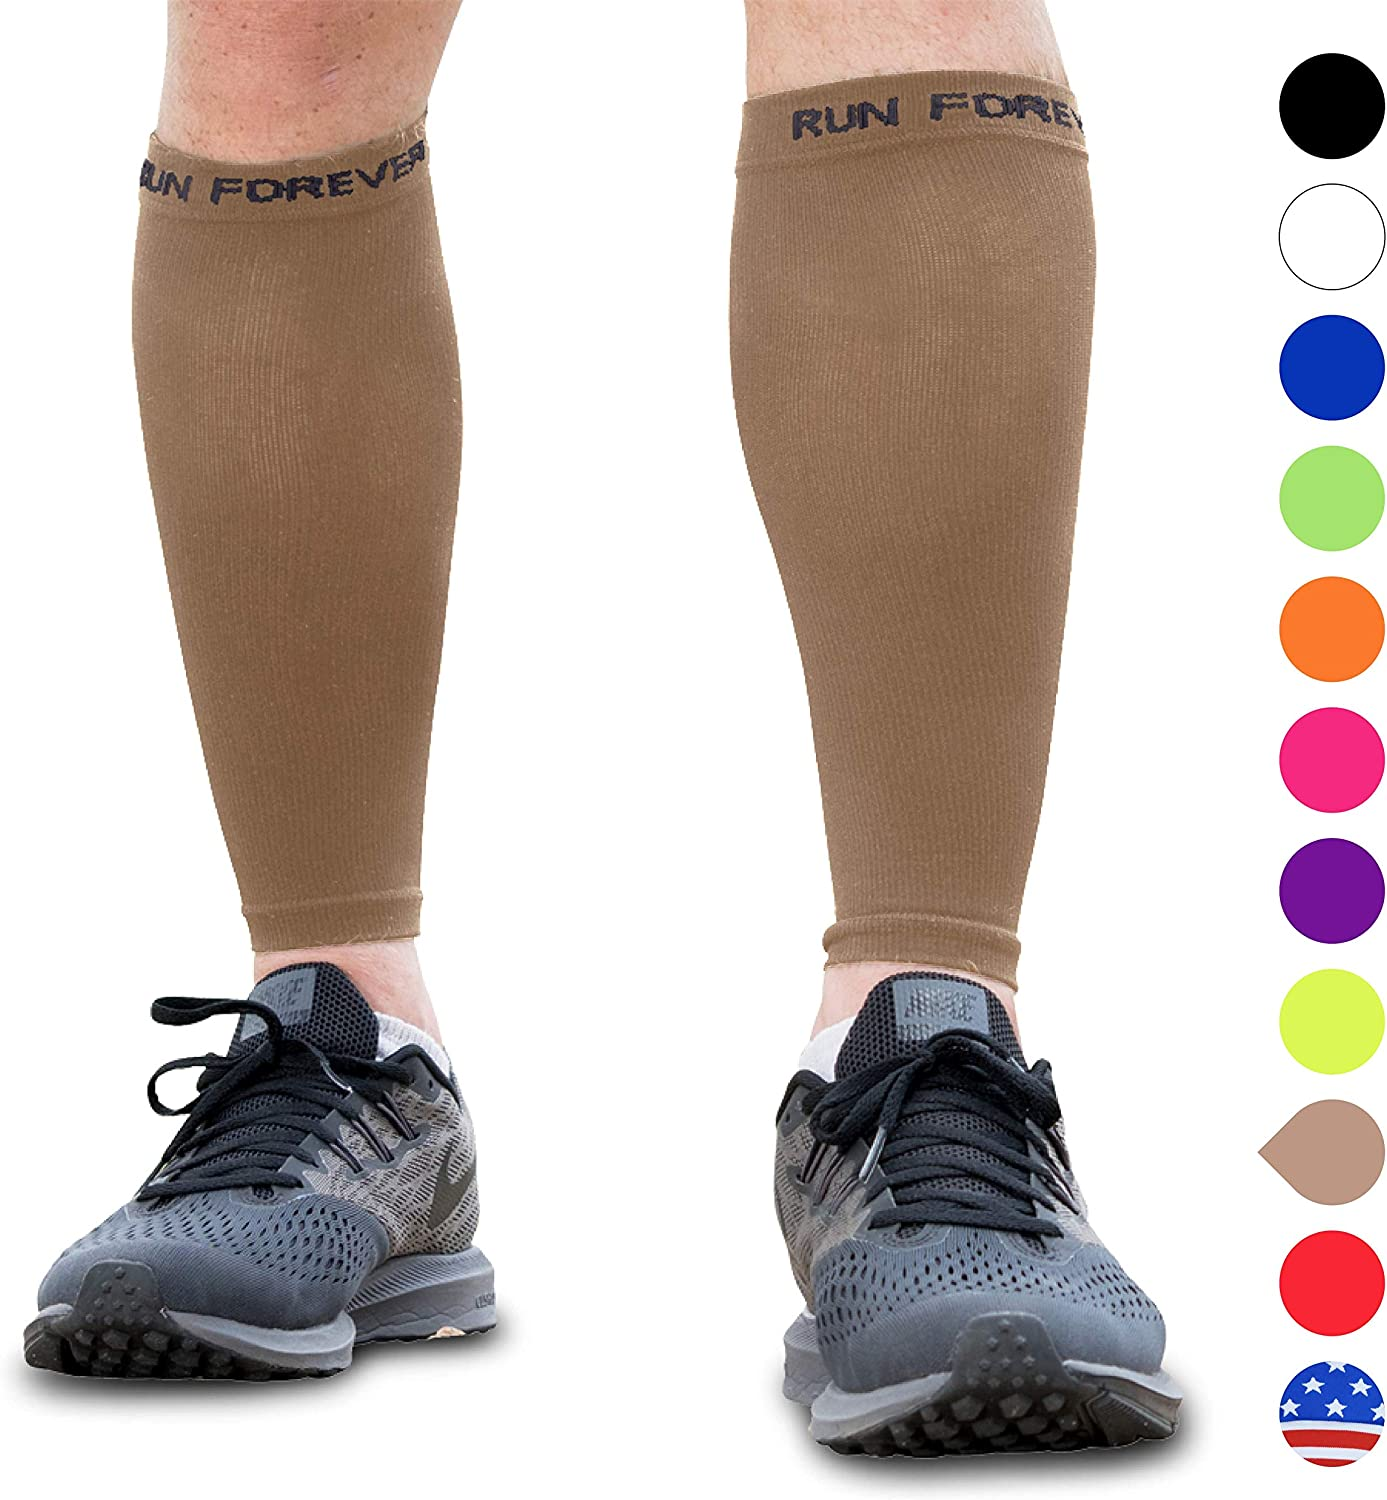 Calf Compression Sleeves Leg Compression Socks for Runners Varicose Vein /& Calf Pain Relief Cycling Maternity Calf Guard Great for Running Nurses Shin Splint Travel